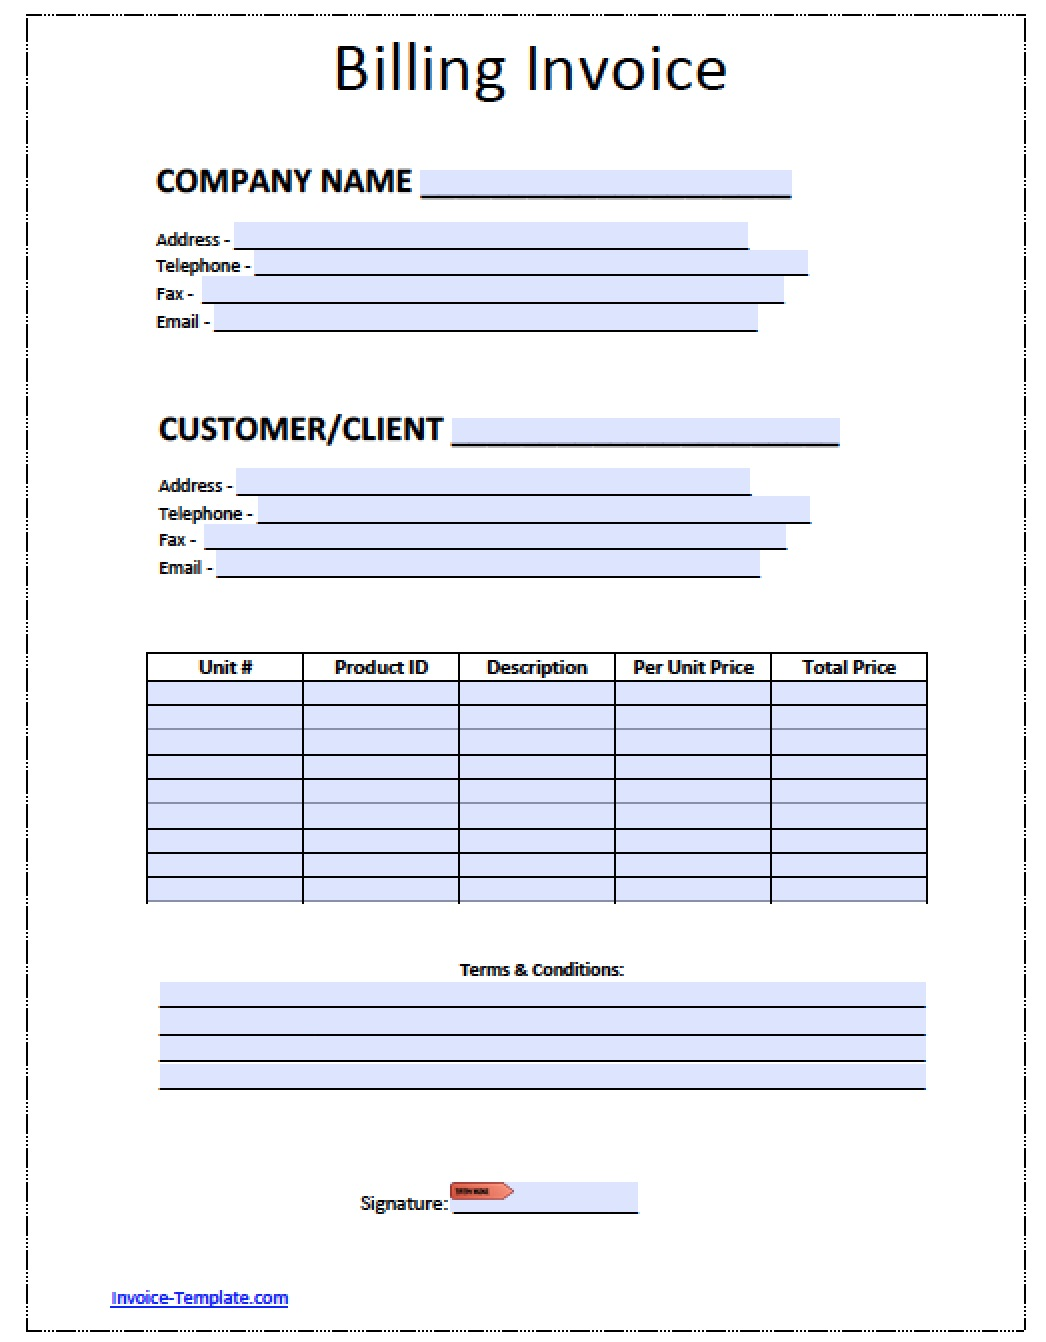 Shopdesignsus  Surprising Billing Invoice Invoices Faq U Cloudflare Support Billing  With Fascinating Free Billing Invoice Template  Excel  Pdf  Word Doc  Billing With Captivating Freelance Invoice Template Word Also Invoice Freelance In Addition Invoice Program Free And Invoice With Paypal As Well As Create An Invoice In Microsoft Word Additionally How To Type Up An Invoice From Happytomco With Shopdesignsus  Fascinating Billing Invoice Invoices Faq U Cloudflare Support Billing  With Captivating Free Billing Invoice Template  Excel  Pdf  Word Doc  Billing And Surprising Freelance Invoice Template Word Also Invoice Freelance In Addition Invoice Program Free From Happytomco